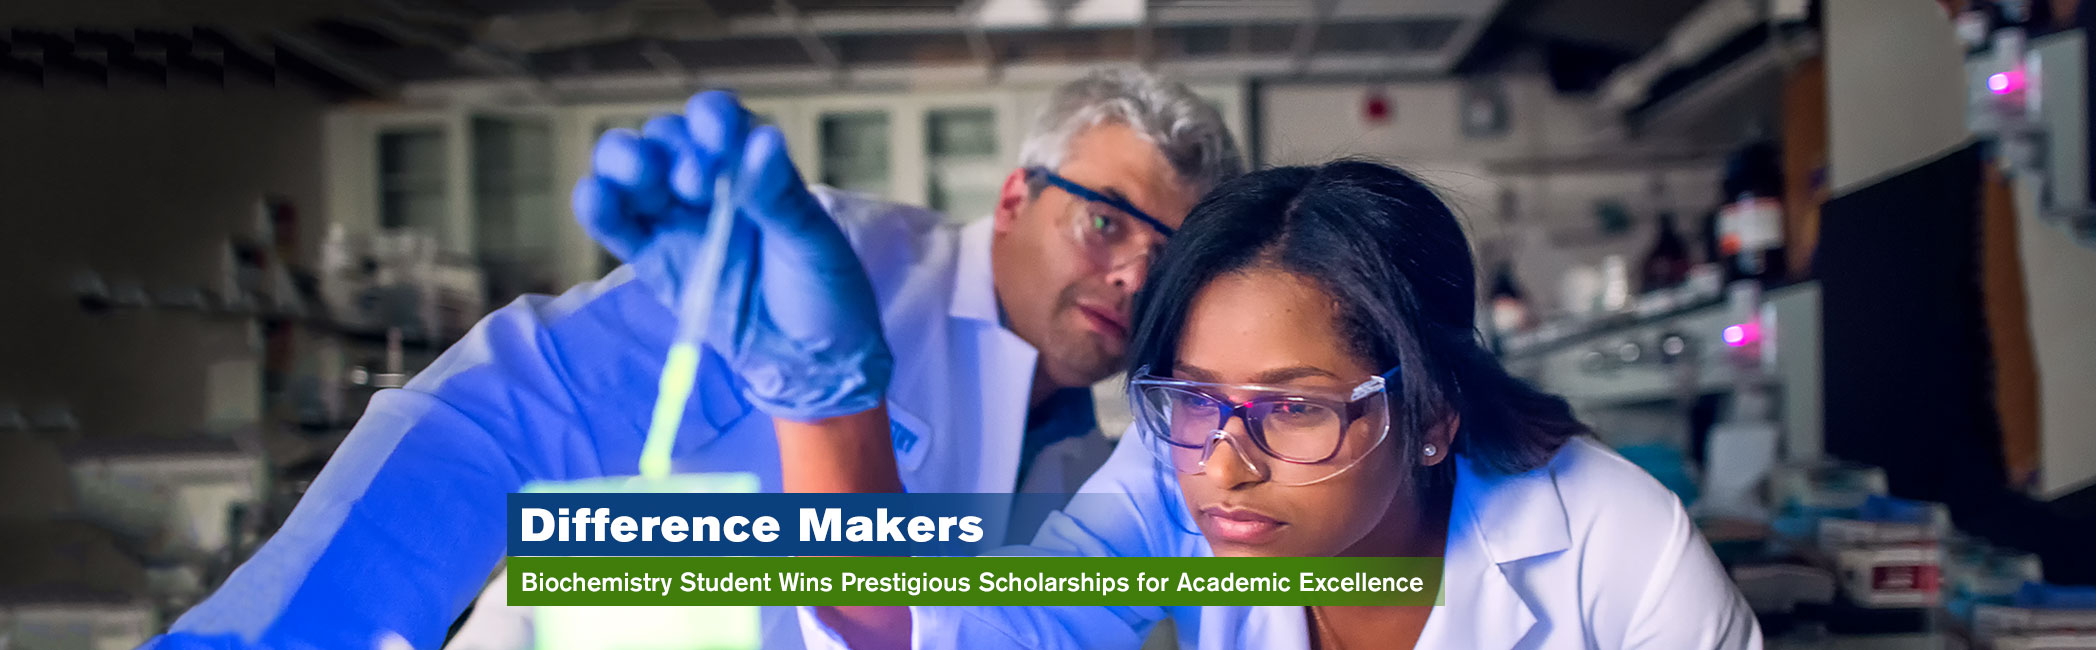 Banner image of Lehman College Biochemistry student and professor working in the lab.